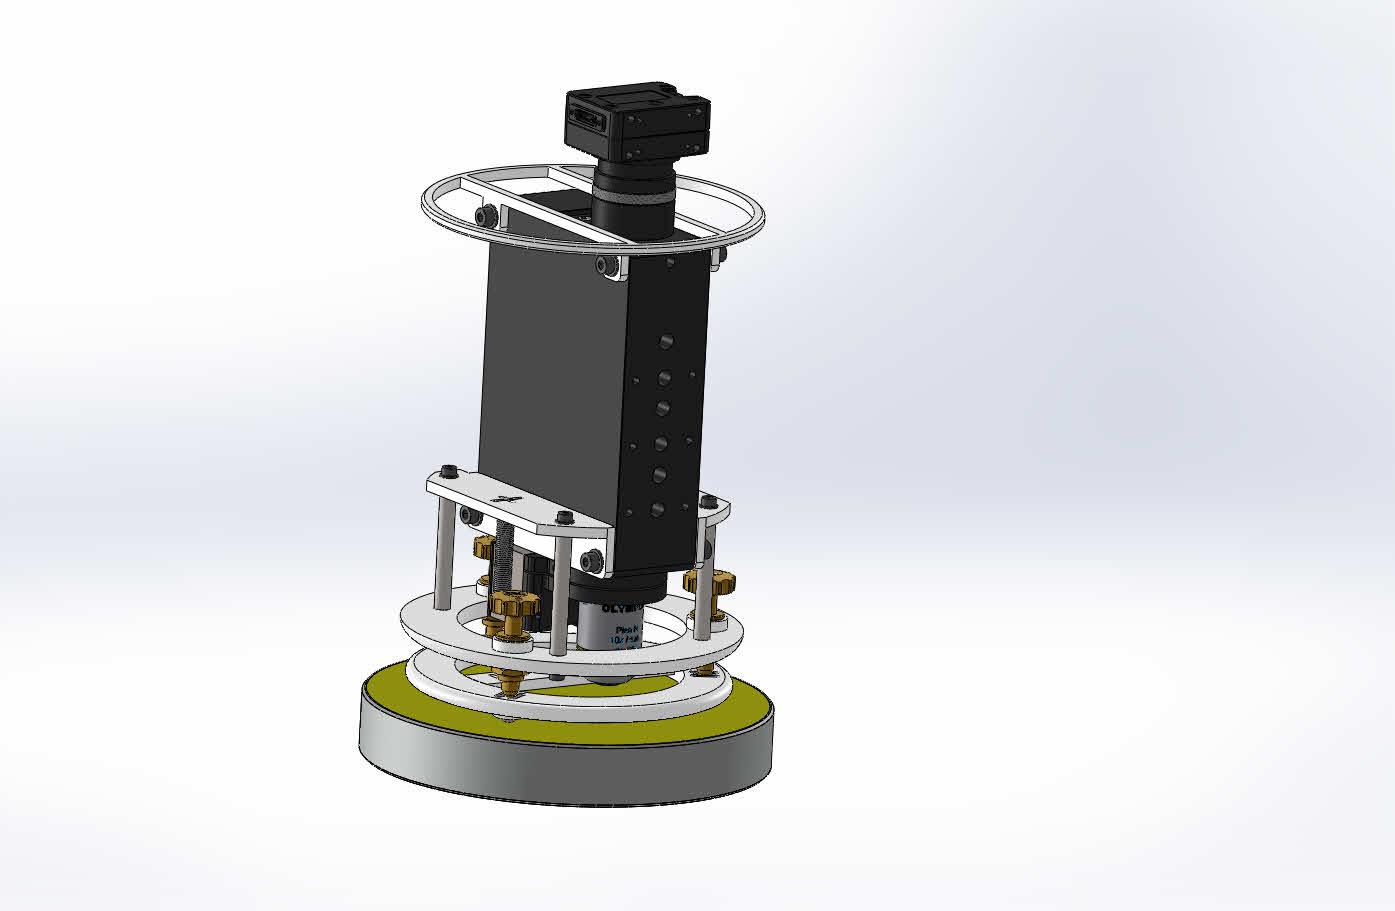 Image # 1 - Interference microscope with a piezo focusing stage used for measuring surface roughness.